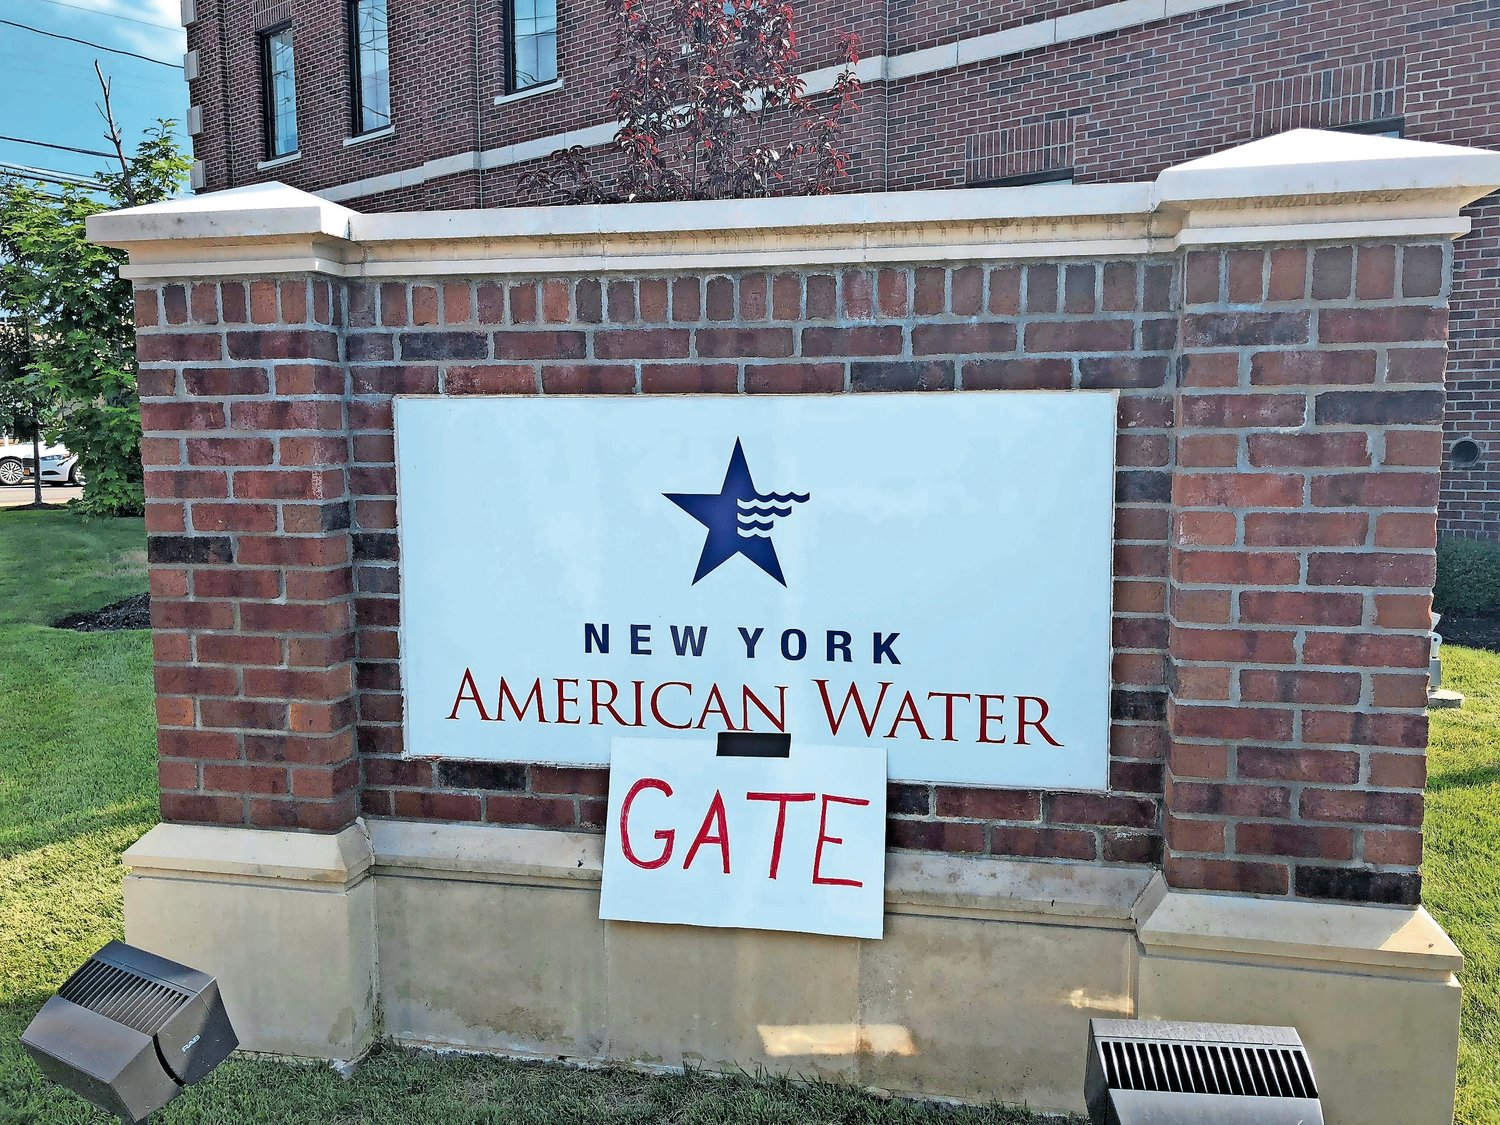 New York American Water sent ratepayers a rate increase notice, indicating that it needed additional revenue to cover production costs and property taxes that it pays.